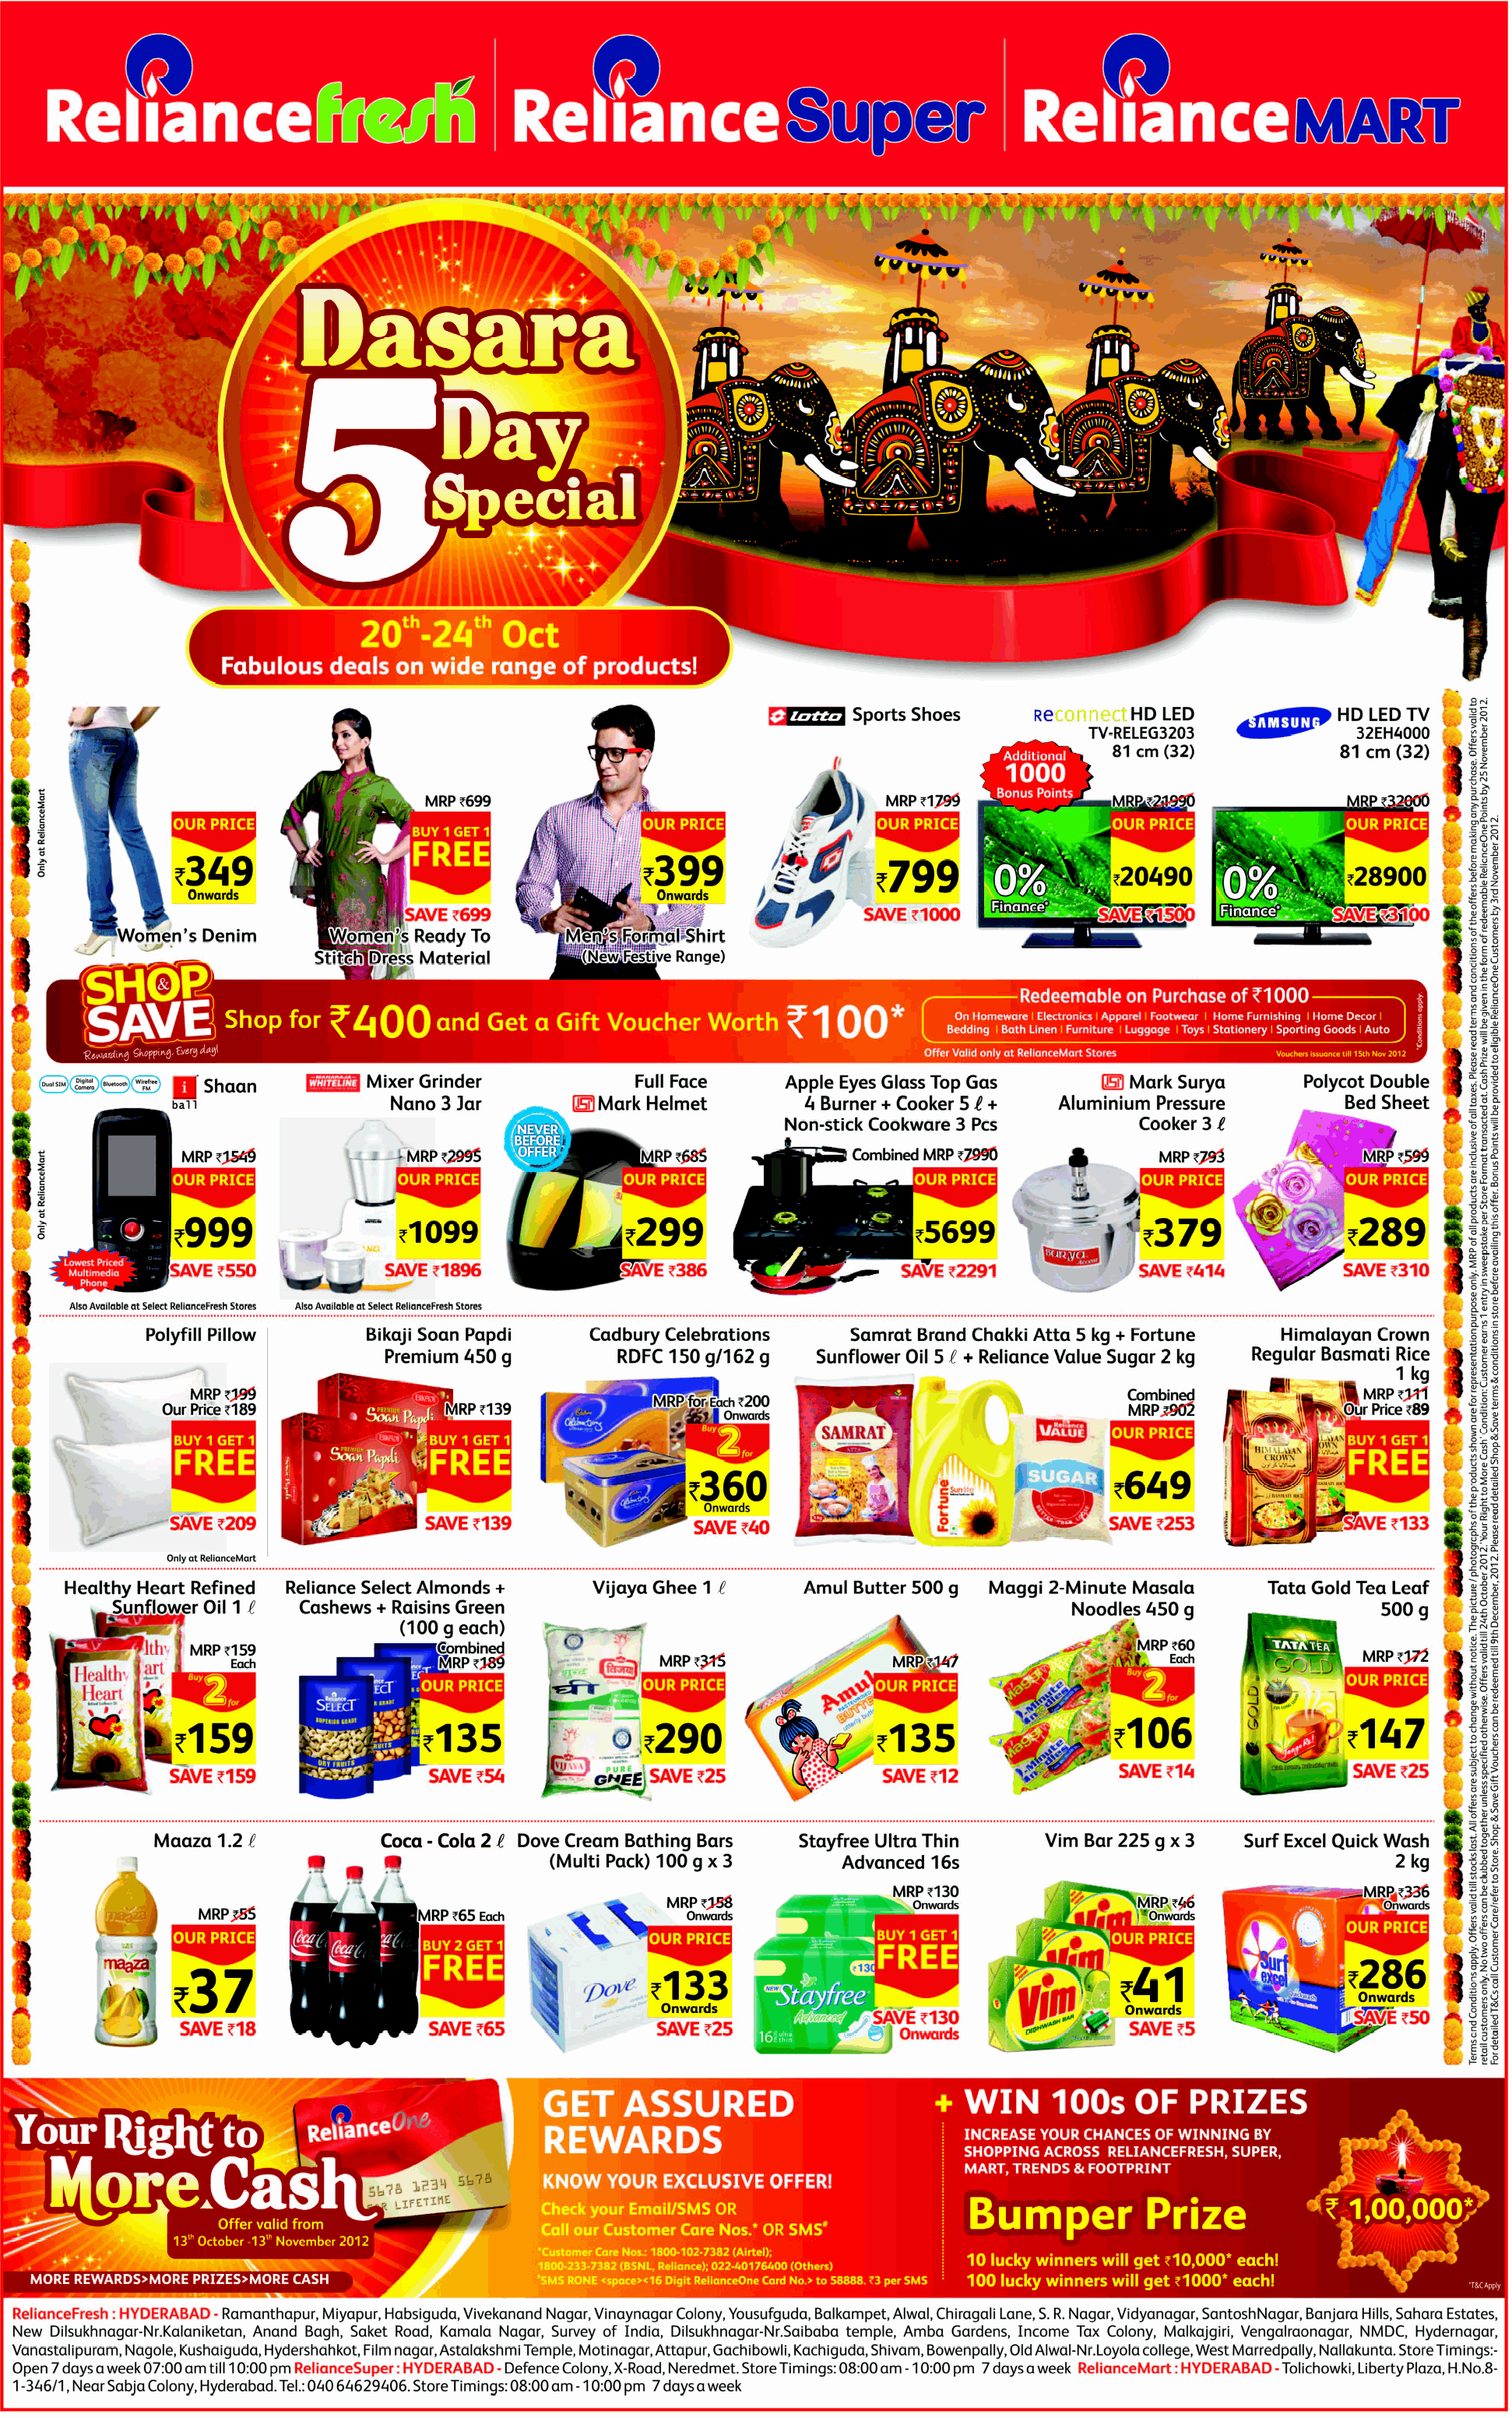 Reliance Stores presents 5 DAY DASARA SPECIAL OFFERS on wide range of products   DealsHut